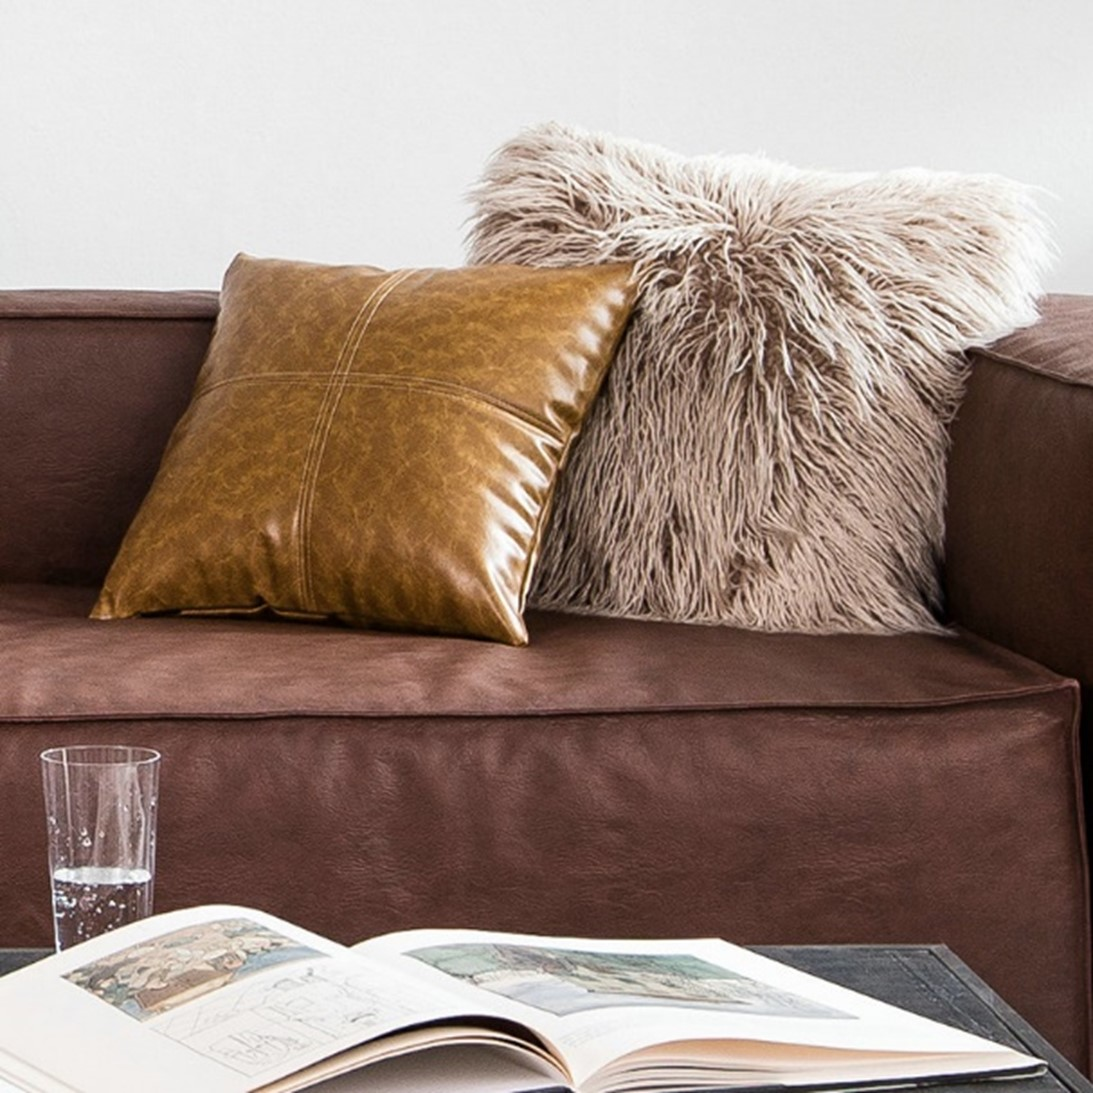 Oversized Pillows Are the Talking Trends